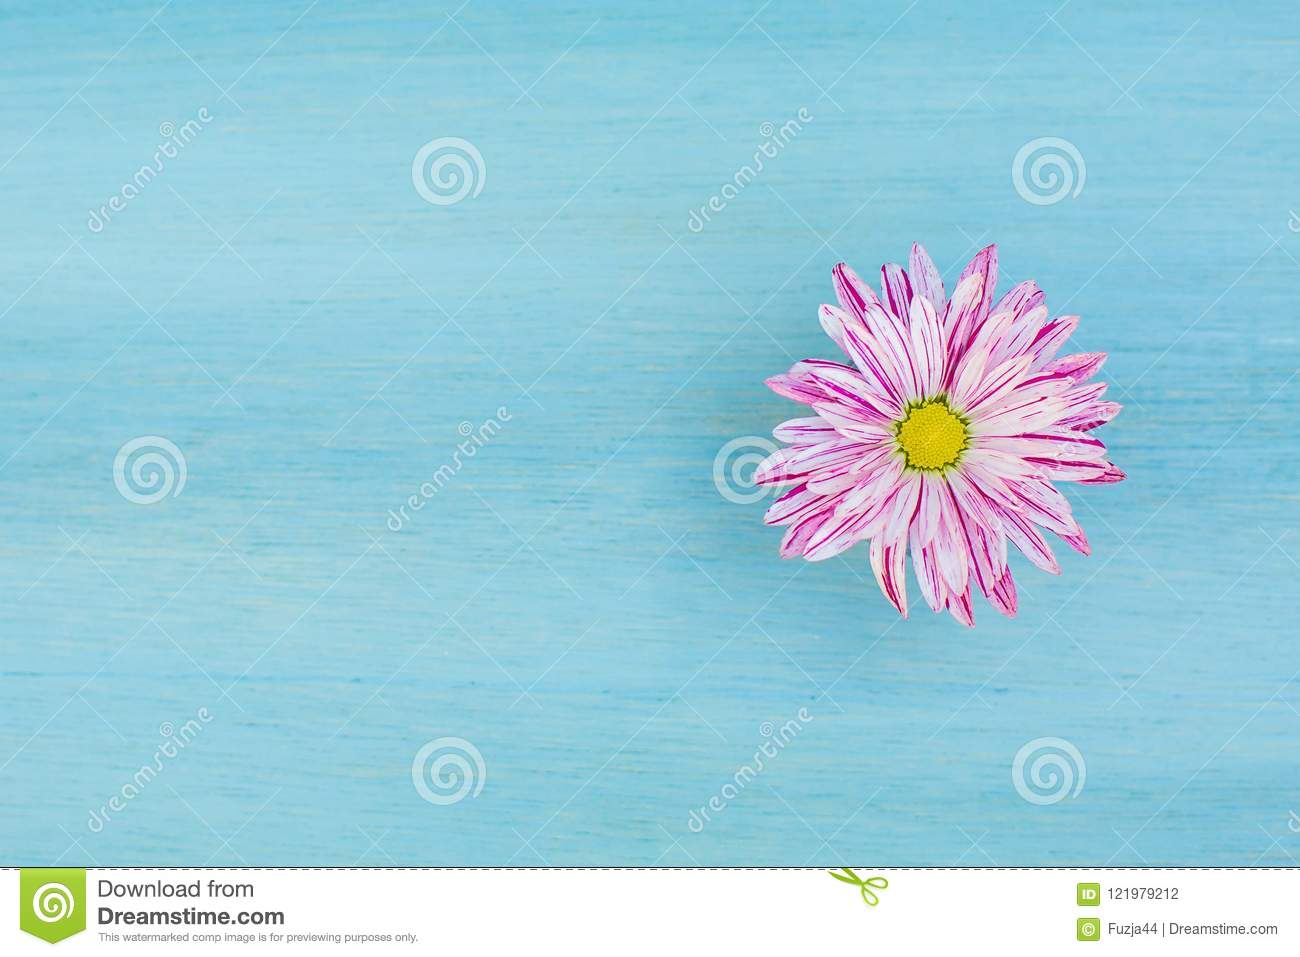 Beautiful pink daisy flower on the blue wooden background.